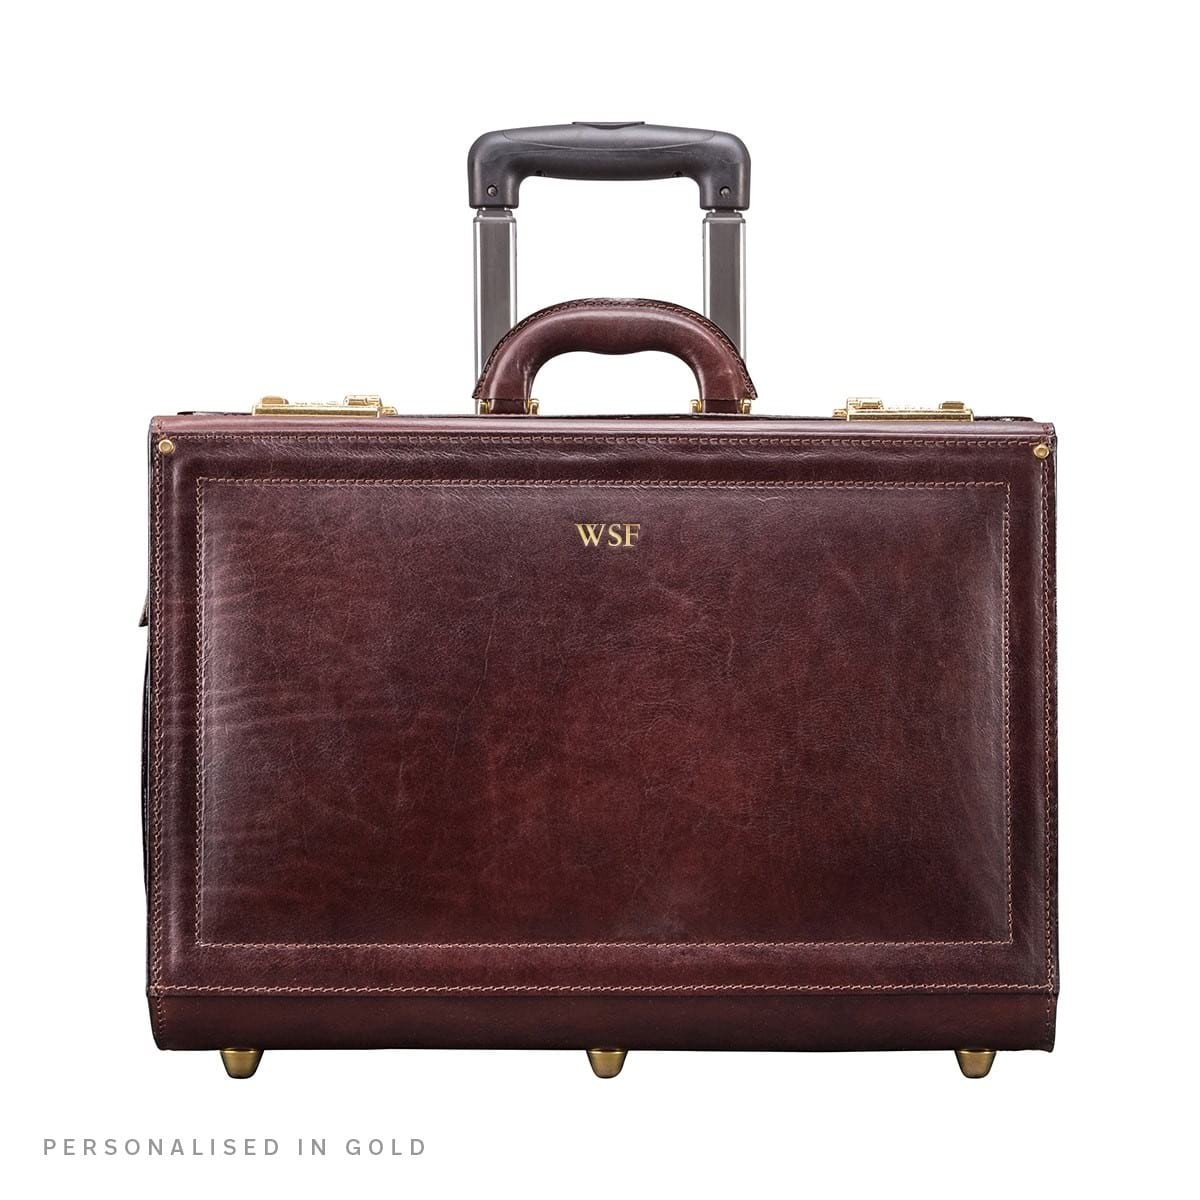 Maxwell Scott Personalised Luxury Brown Leather Wheeled Pilot Case (The VareseW)